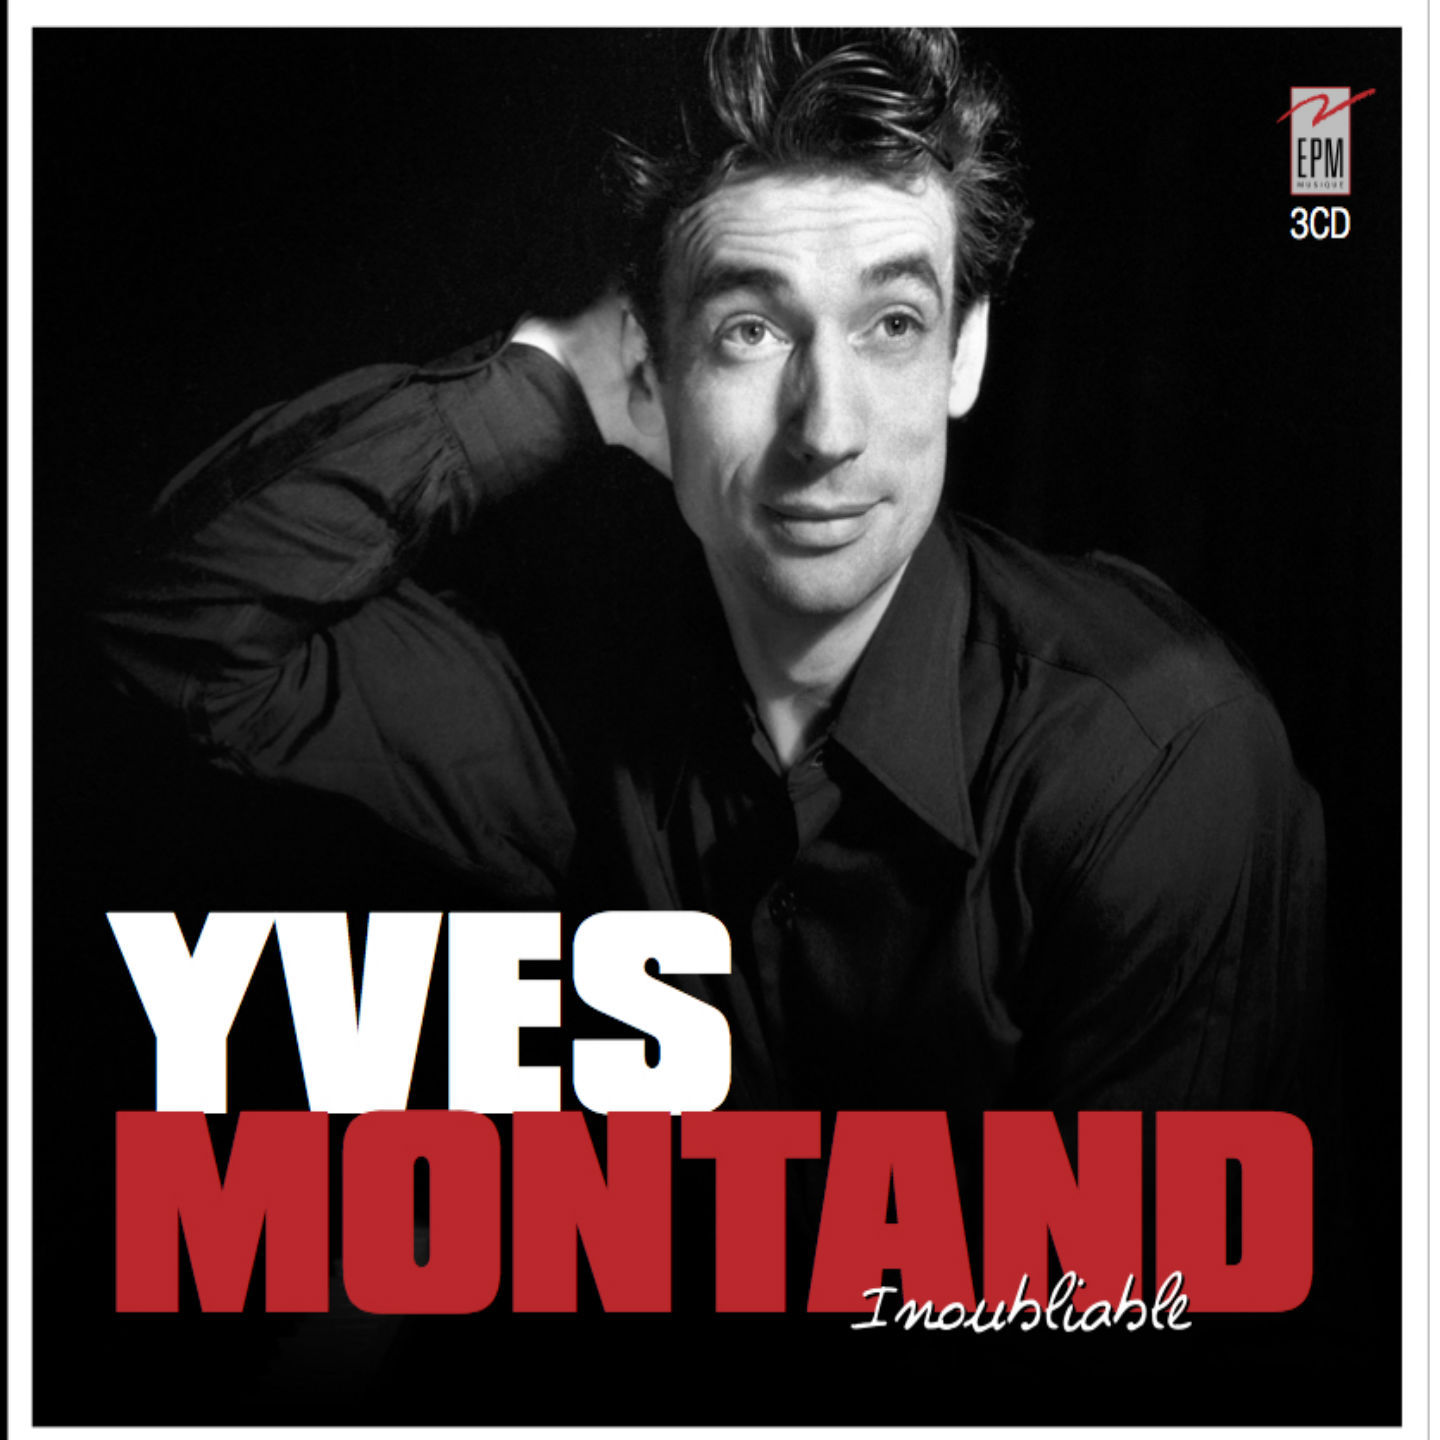 YVES MONTAND INOUBLIABLE